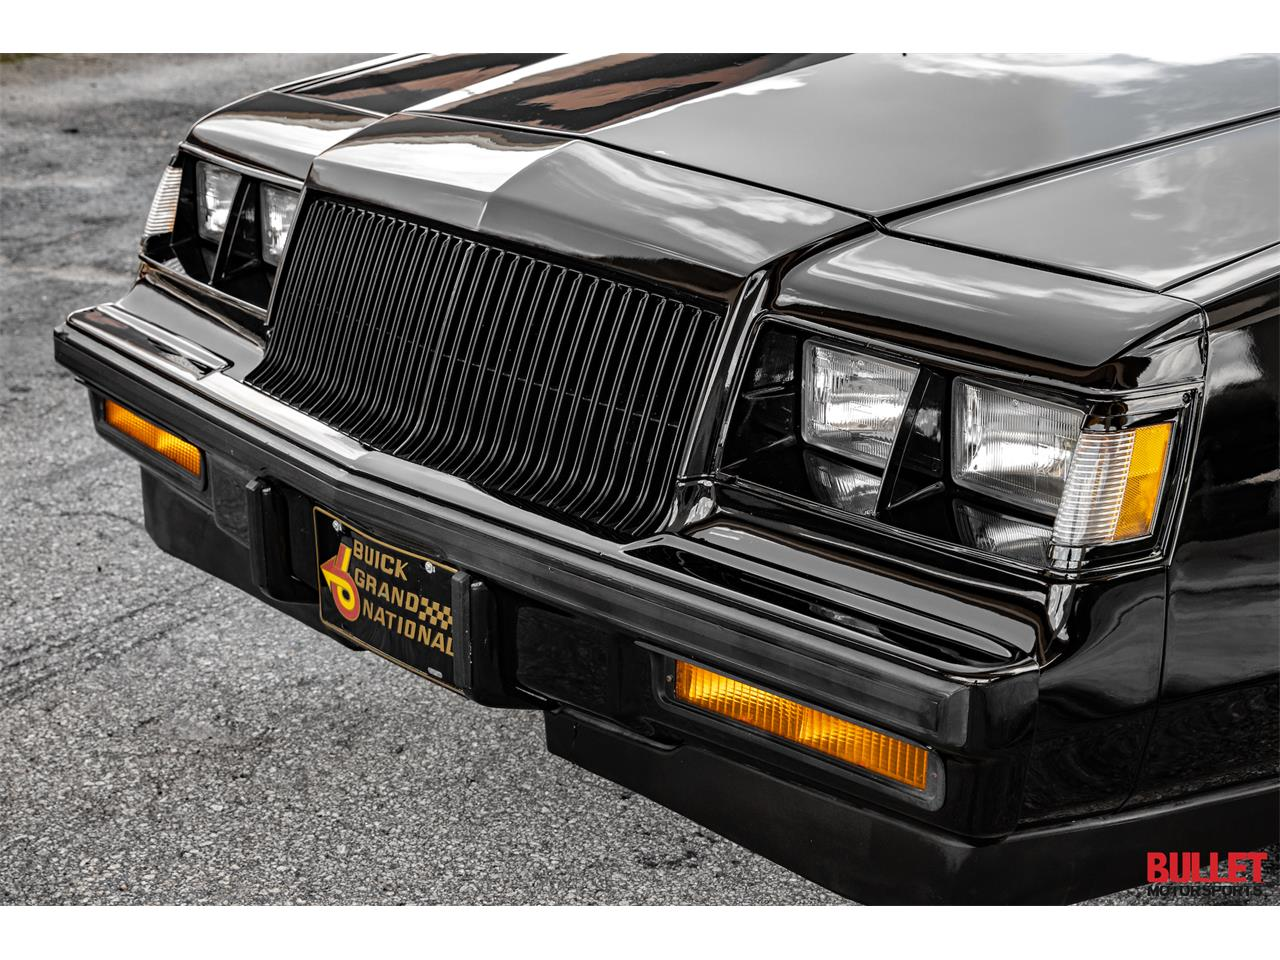 Large Picture of 1987 Grand National located in Fort Lauderdale Florida Offered by Bullet Motorsports Inc - PSK7